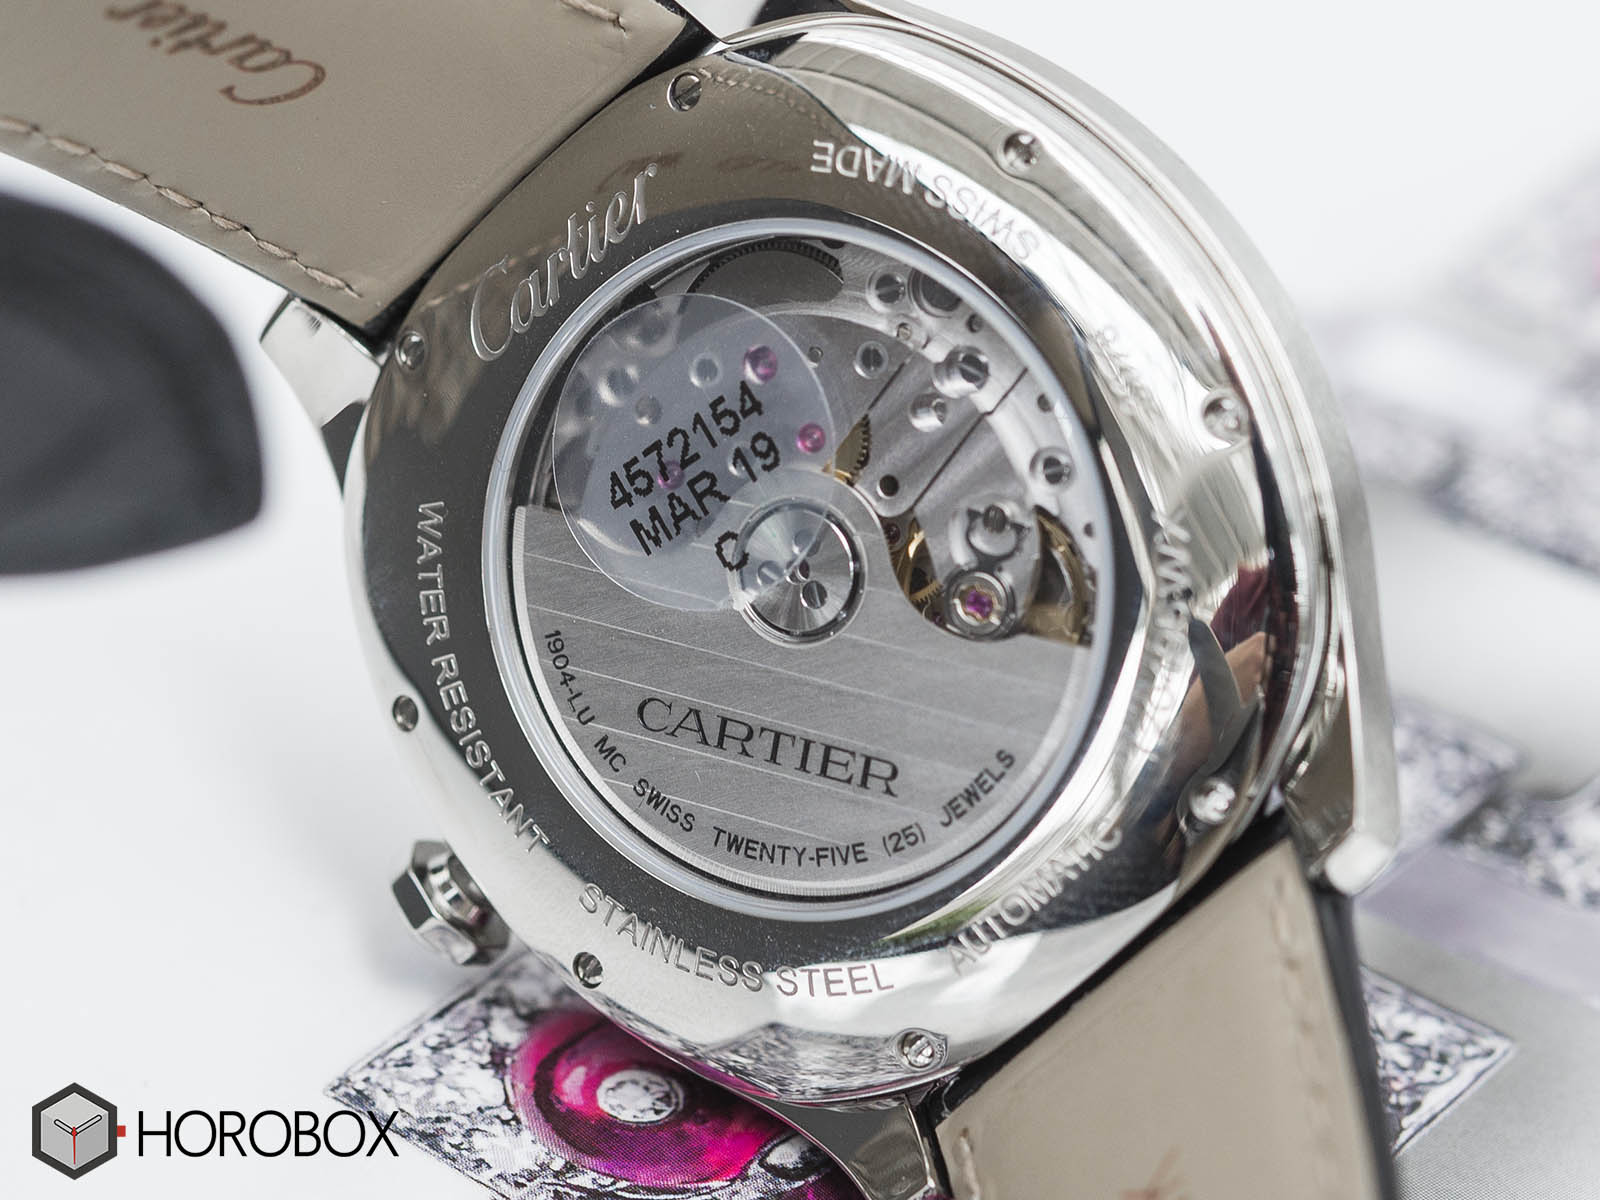 drive-de-cartier-moon-phases-watch-wsnm0008-5.jpg